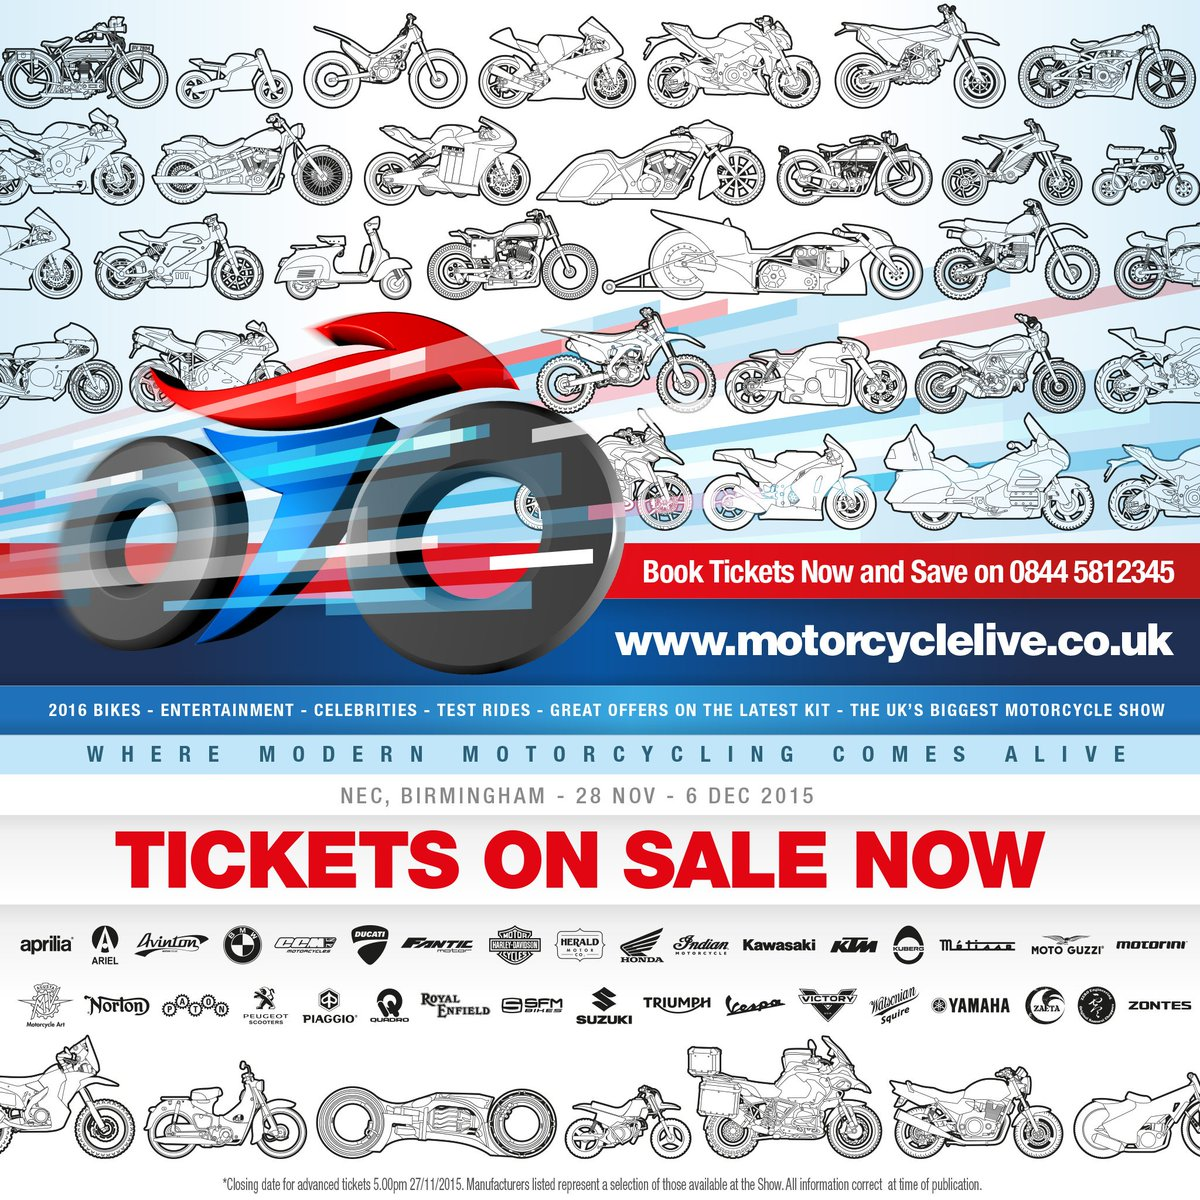 #MotorcycleLive comes alive: NEC, Birmingham 28Nov-6Dec! 2 pairs of tickets to give away-RT to enter @motorcyclelive https://t.co/oXc9X4n1TW